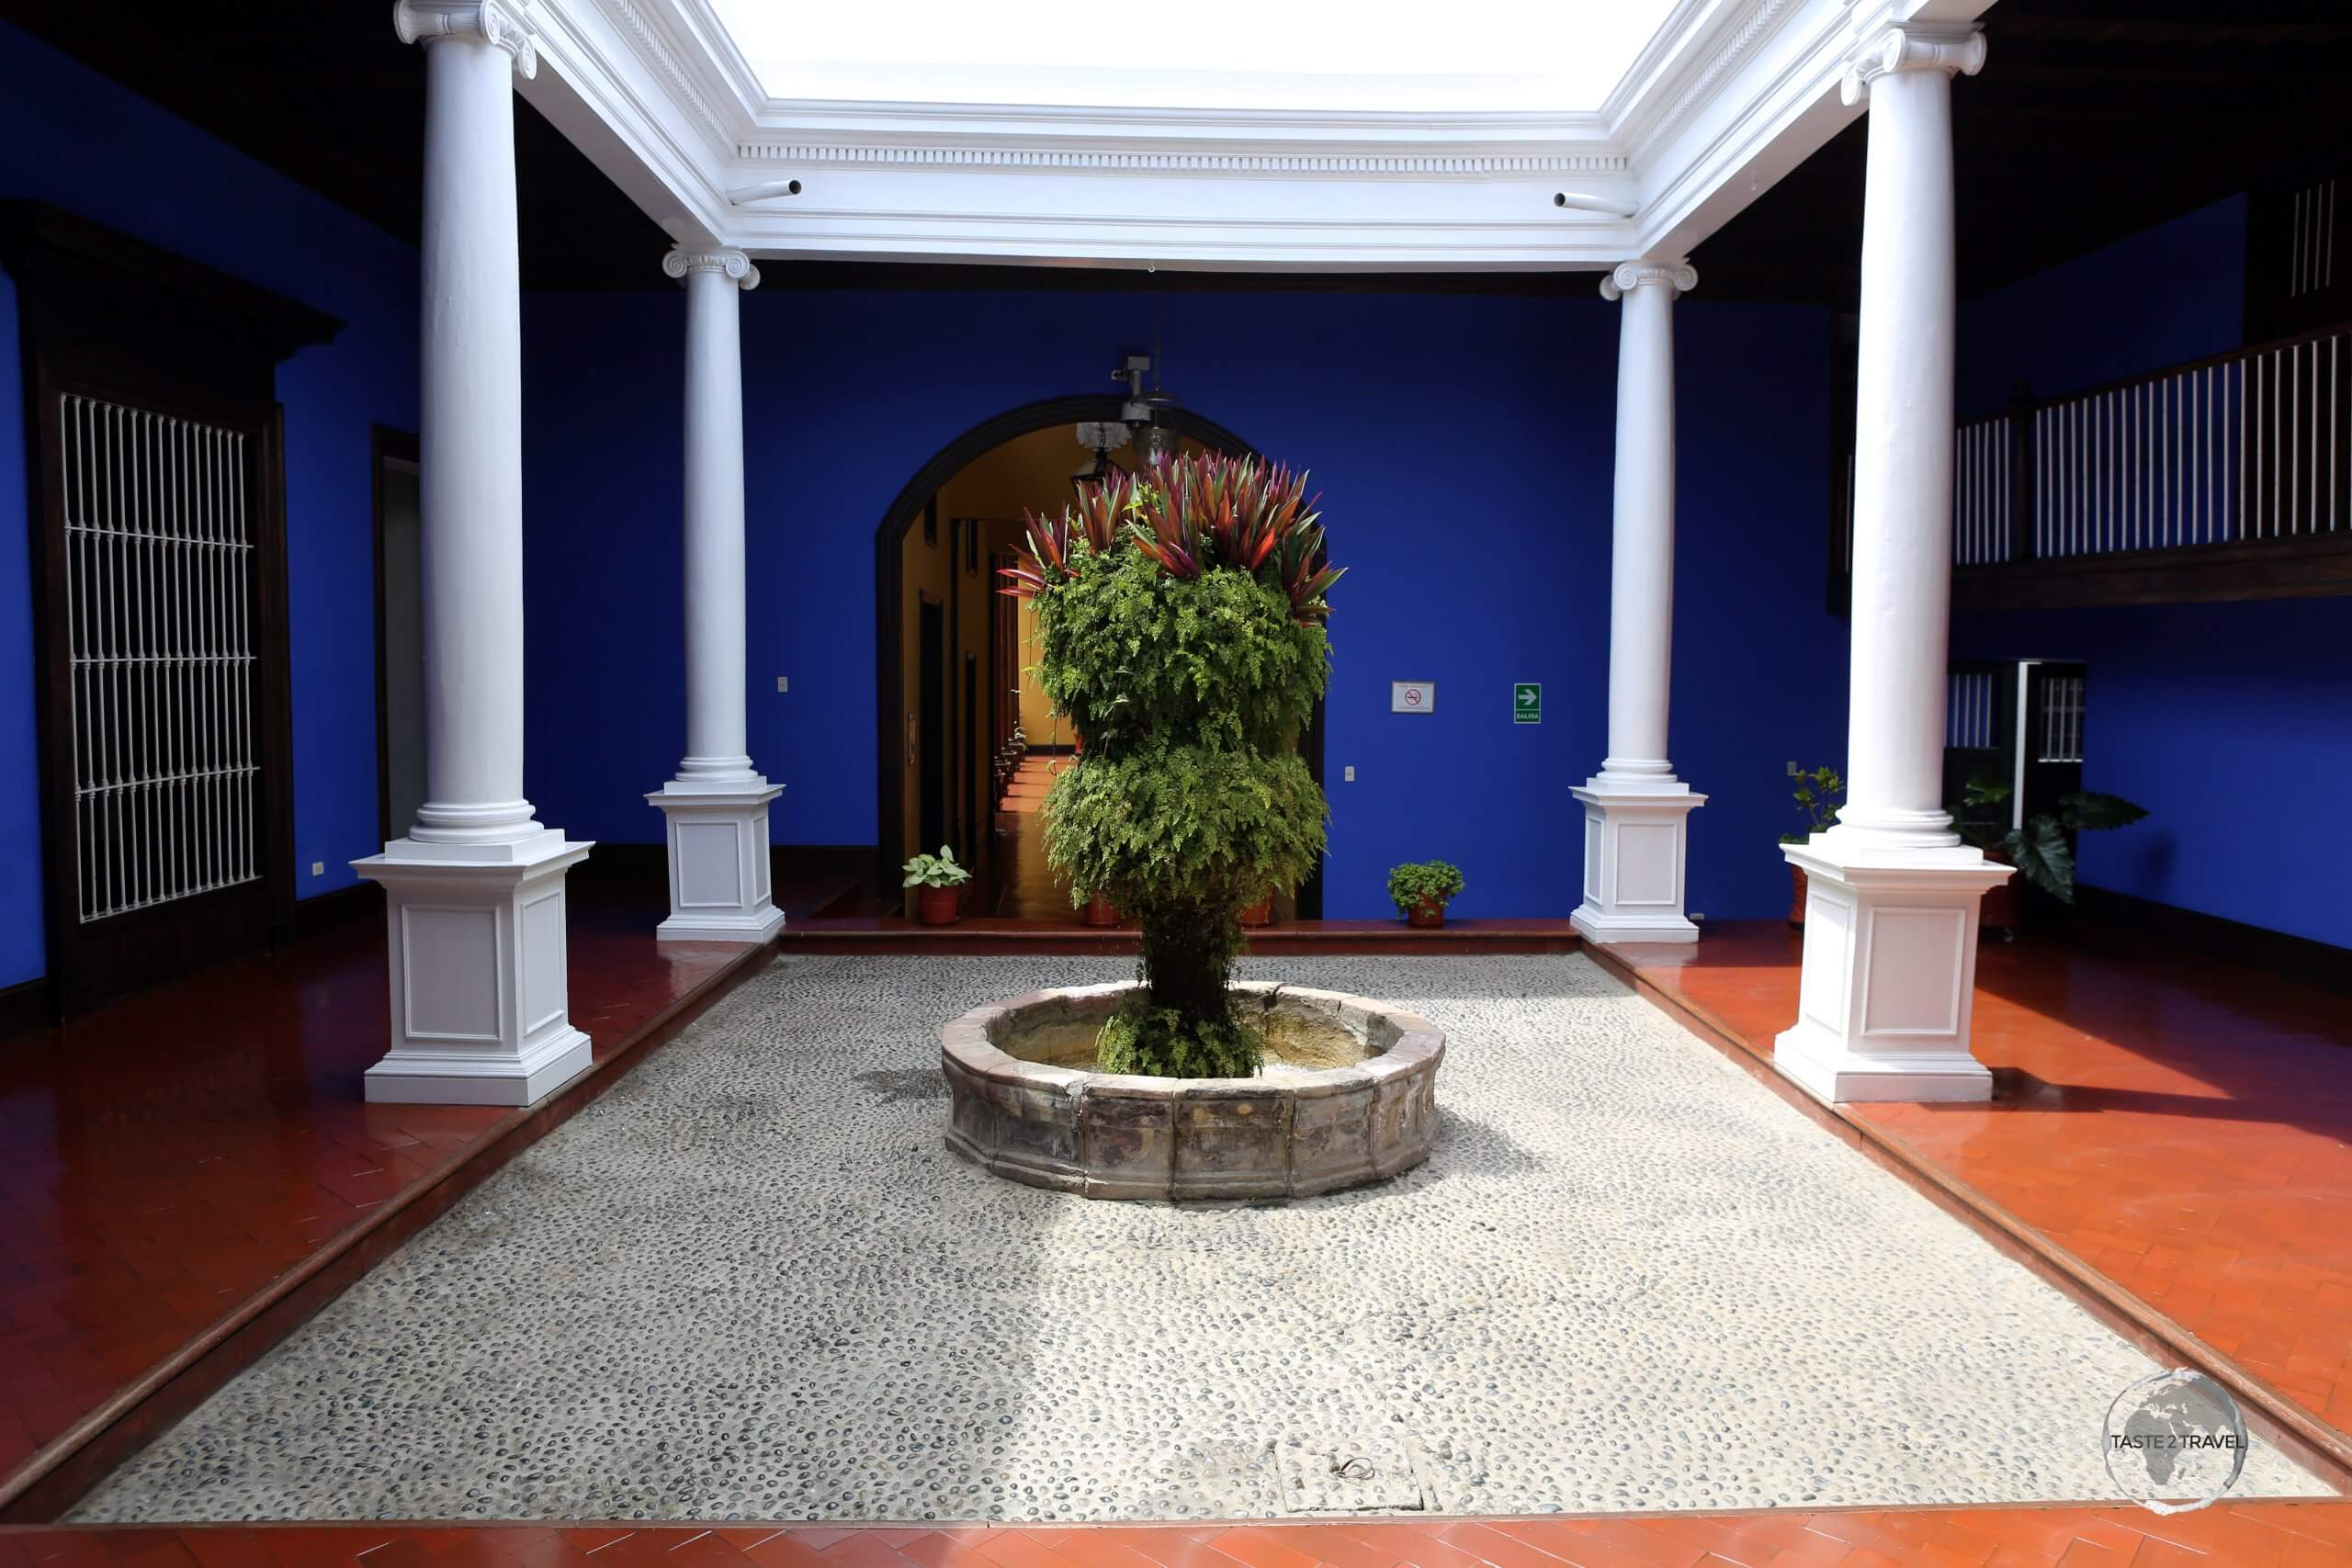 The courtyard of Casa Urquiaga, a neo-classical house which is now a museum which features gold ornaments of the Chimú culture, the the desk of Liberator Simon Bolivar.